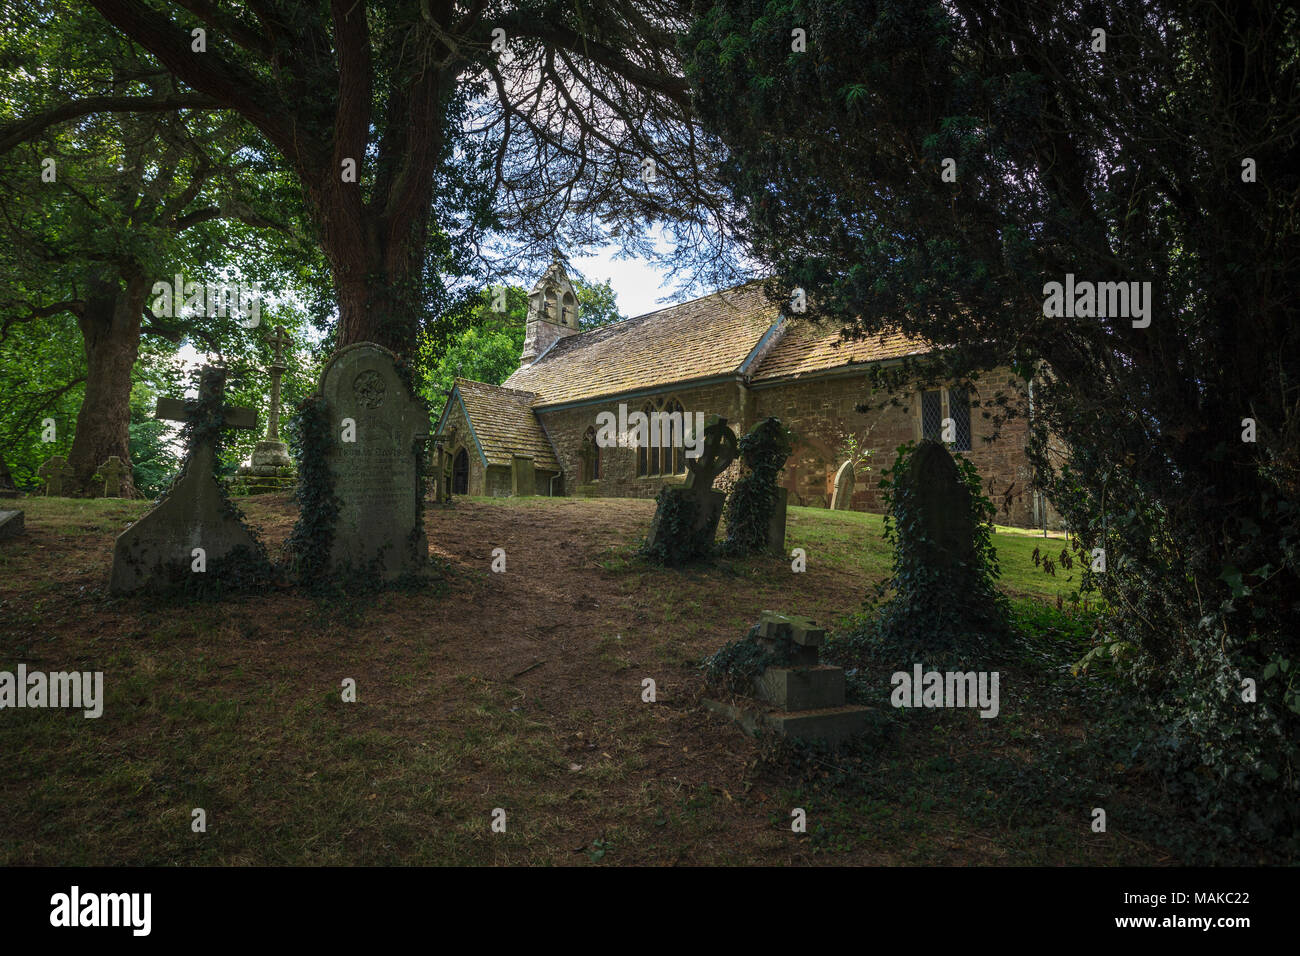 St. Dubricius Parish Church, Symonds Yat, Ross-on-Wye - Stock Image